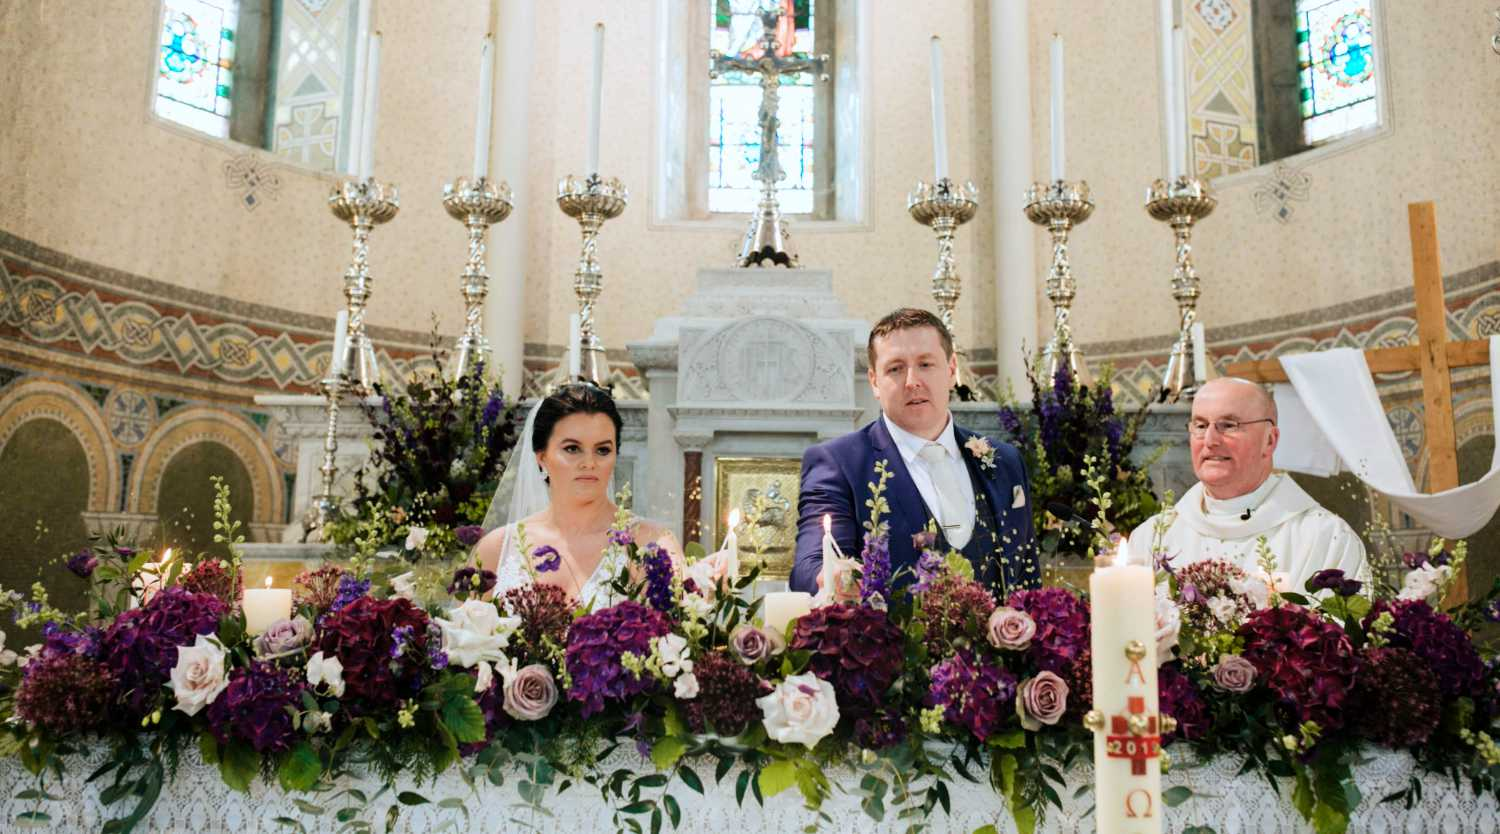 Purple and White Floral Display on Church Altar